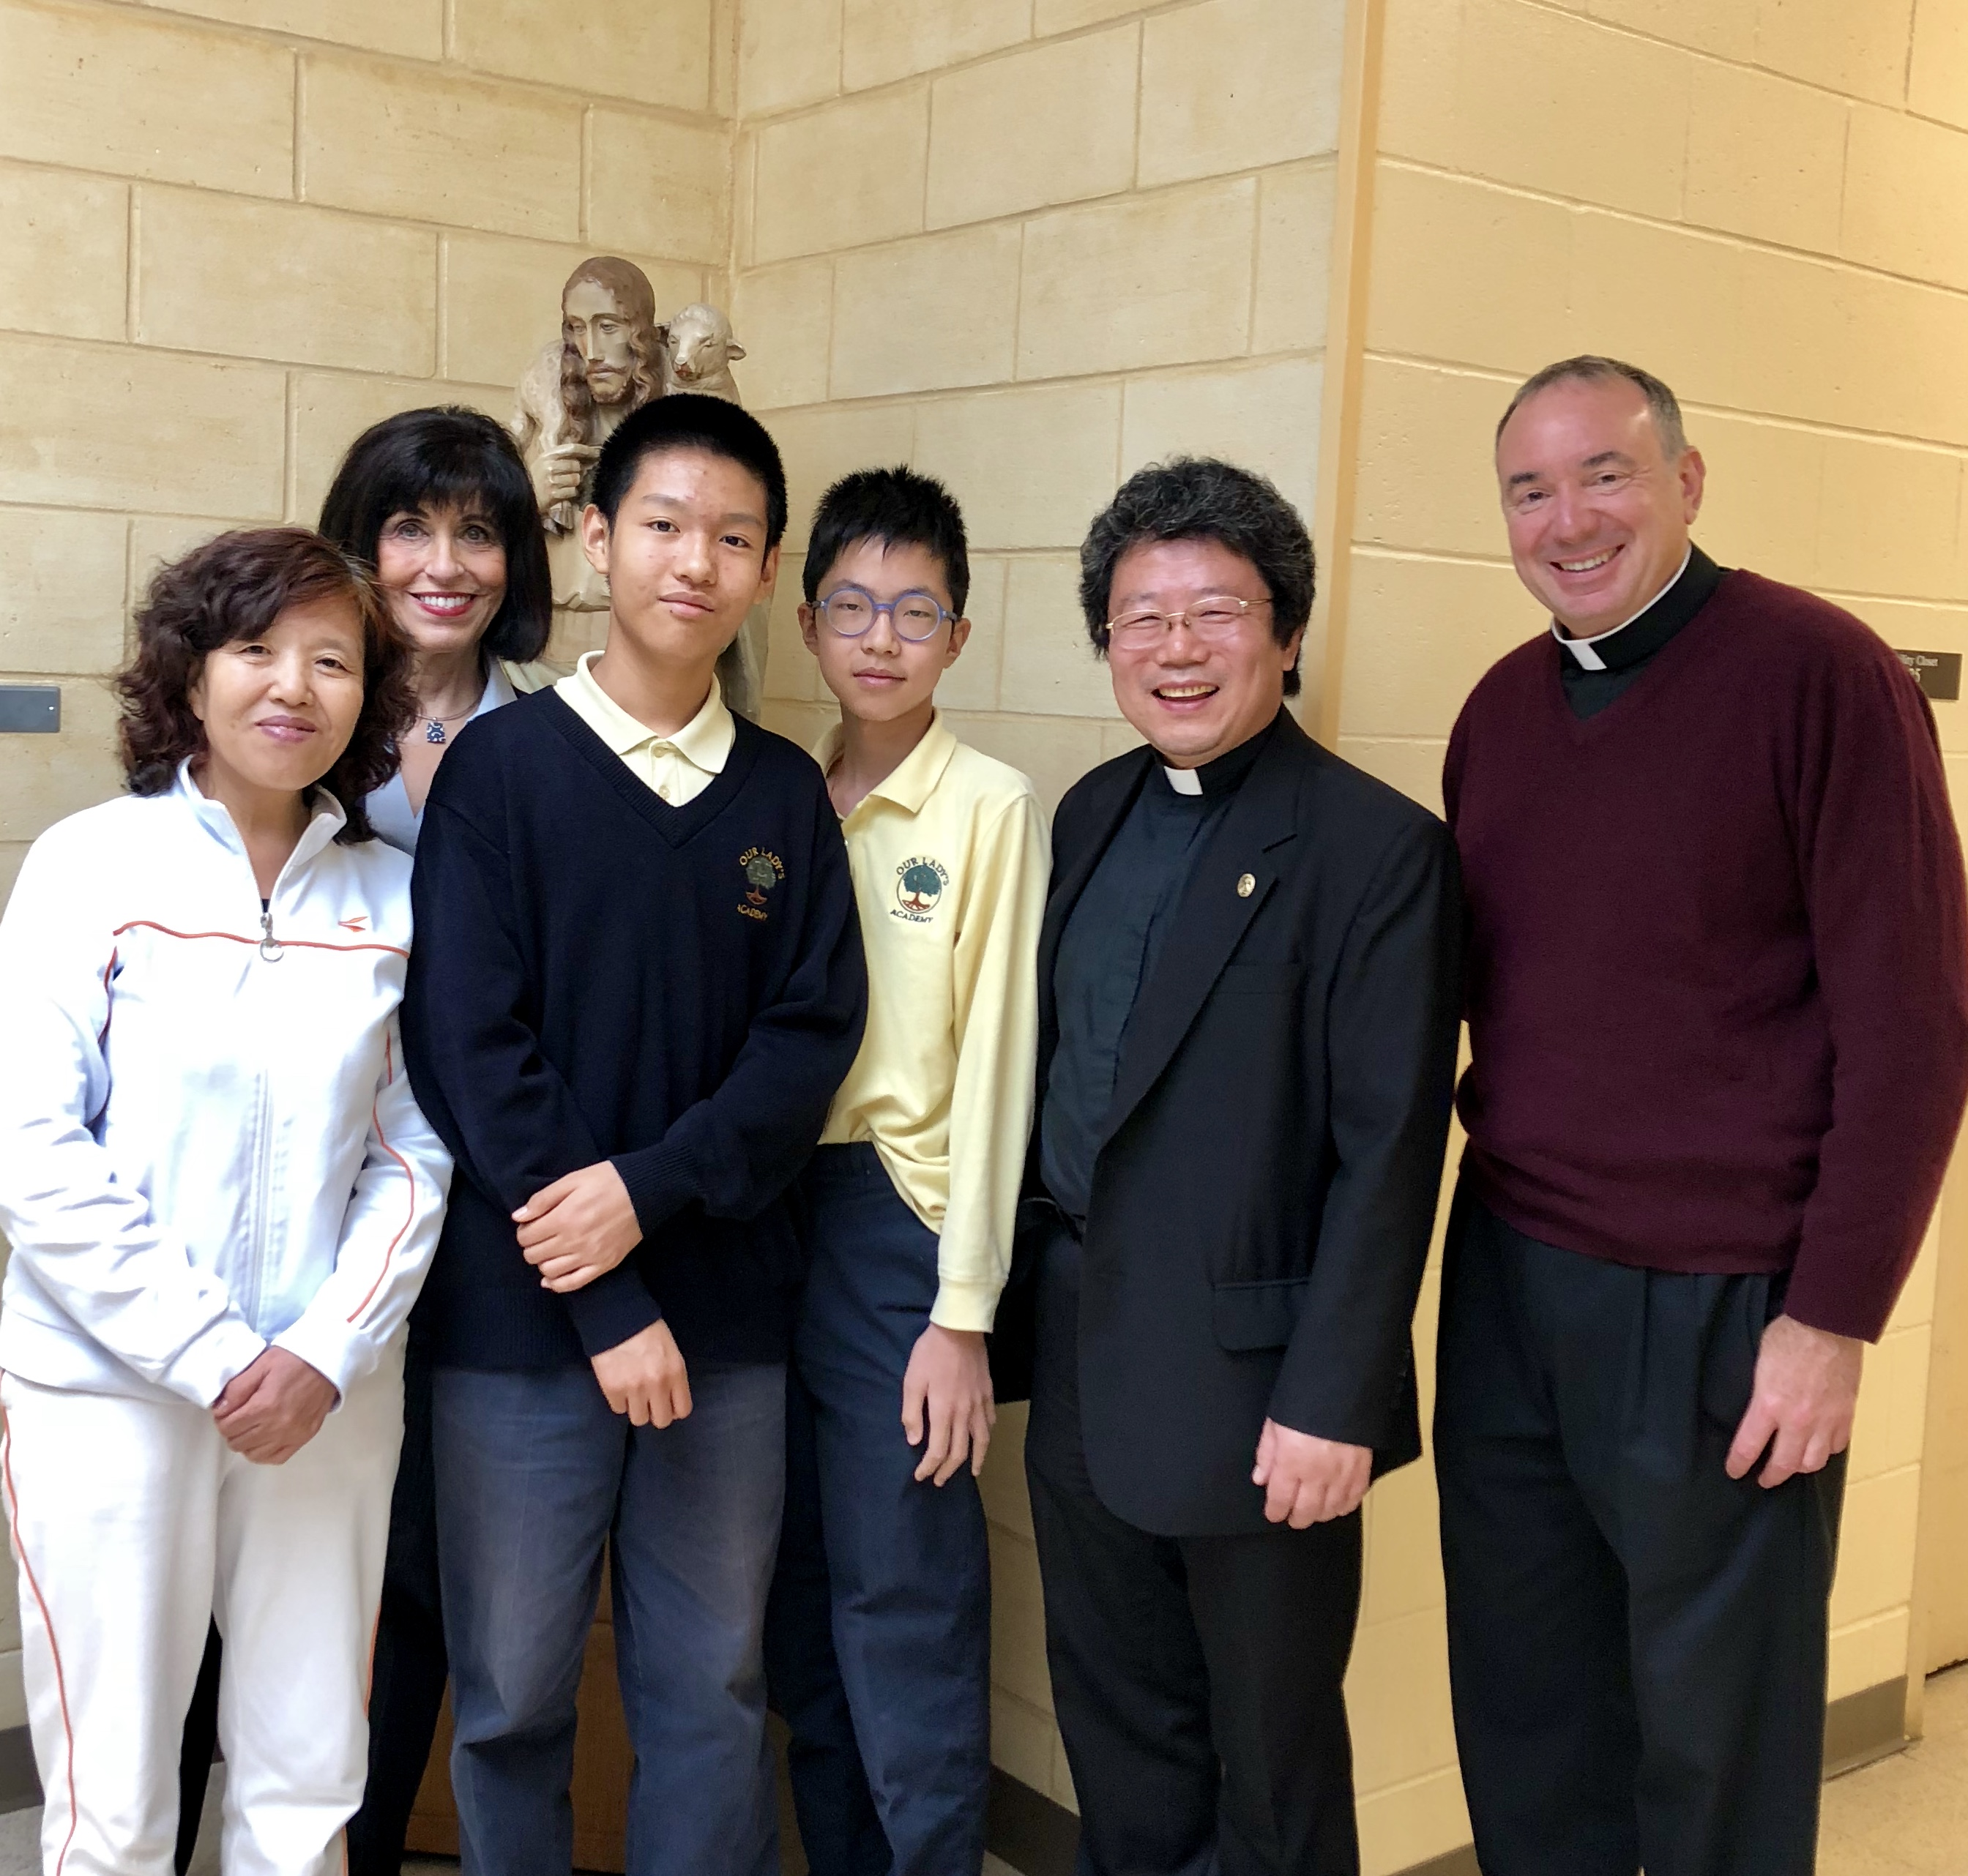 Fr John Chen, Chinese native priest, now Boston priest assigned to Catholic parishes of Lexington visiting our school to speak to our Chinese students in their native language